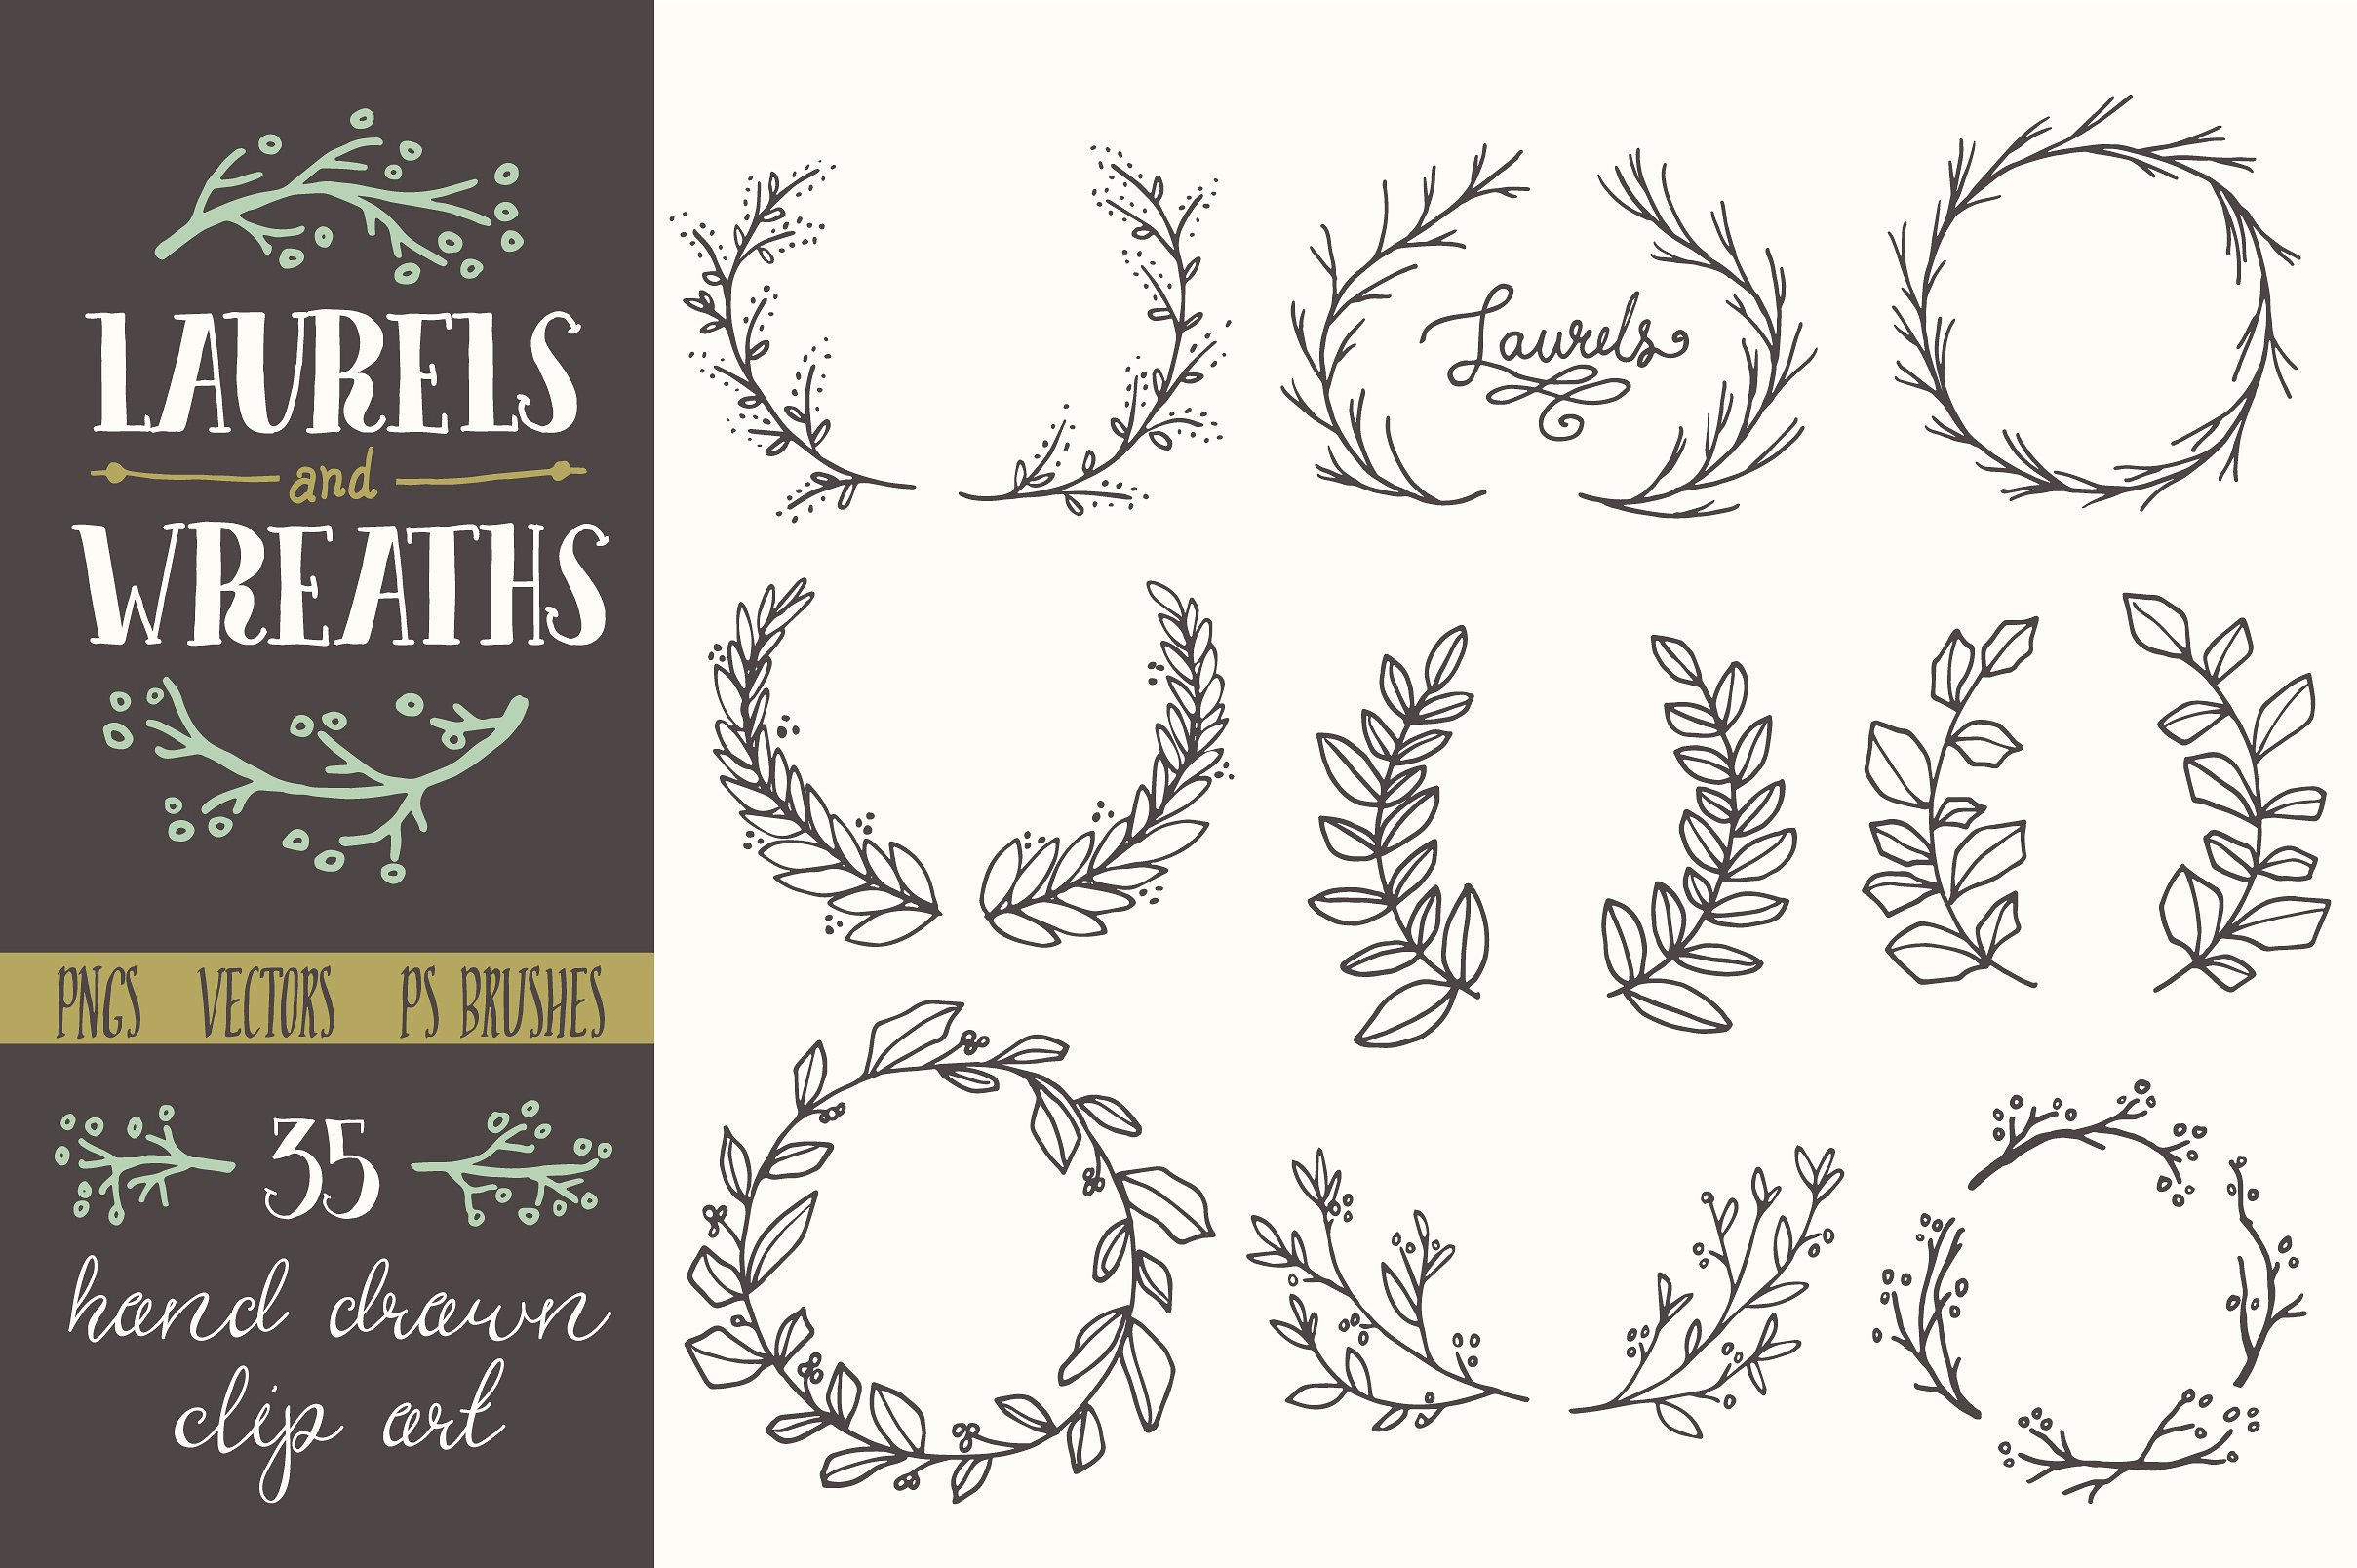 Whimsical Laurels u0026amp; Wreaths Clip-Whimsical Laurels u0026amp; Wreaths Clip Art-4